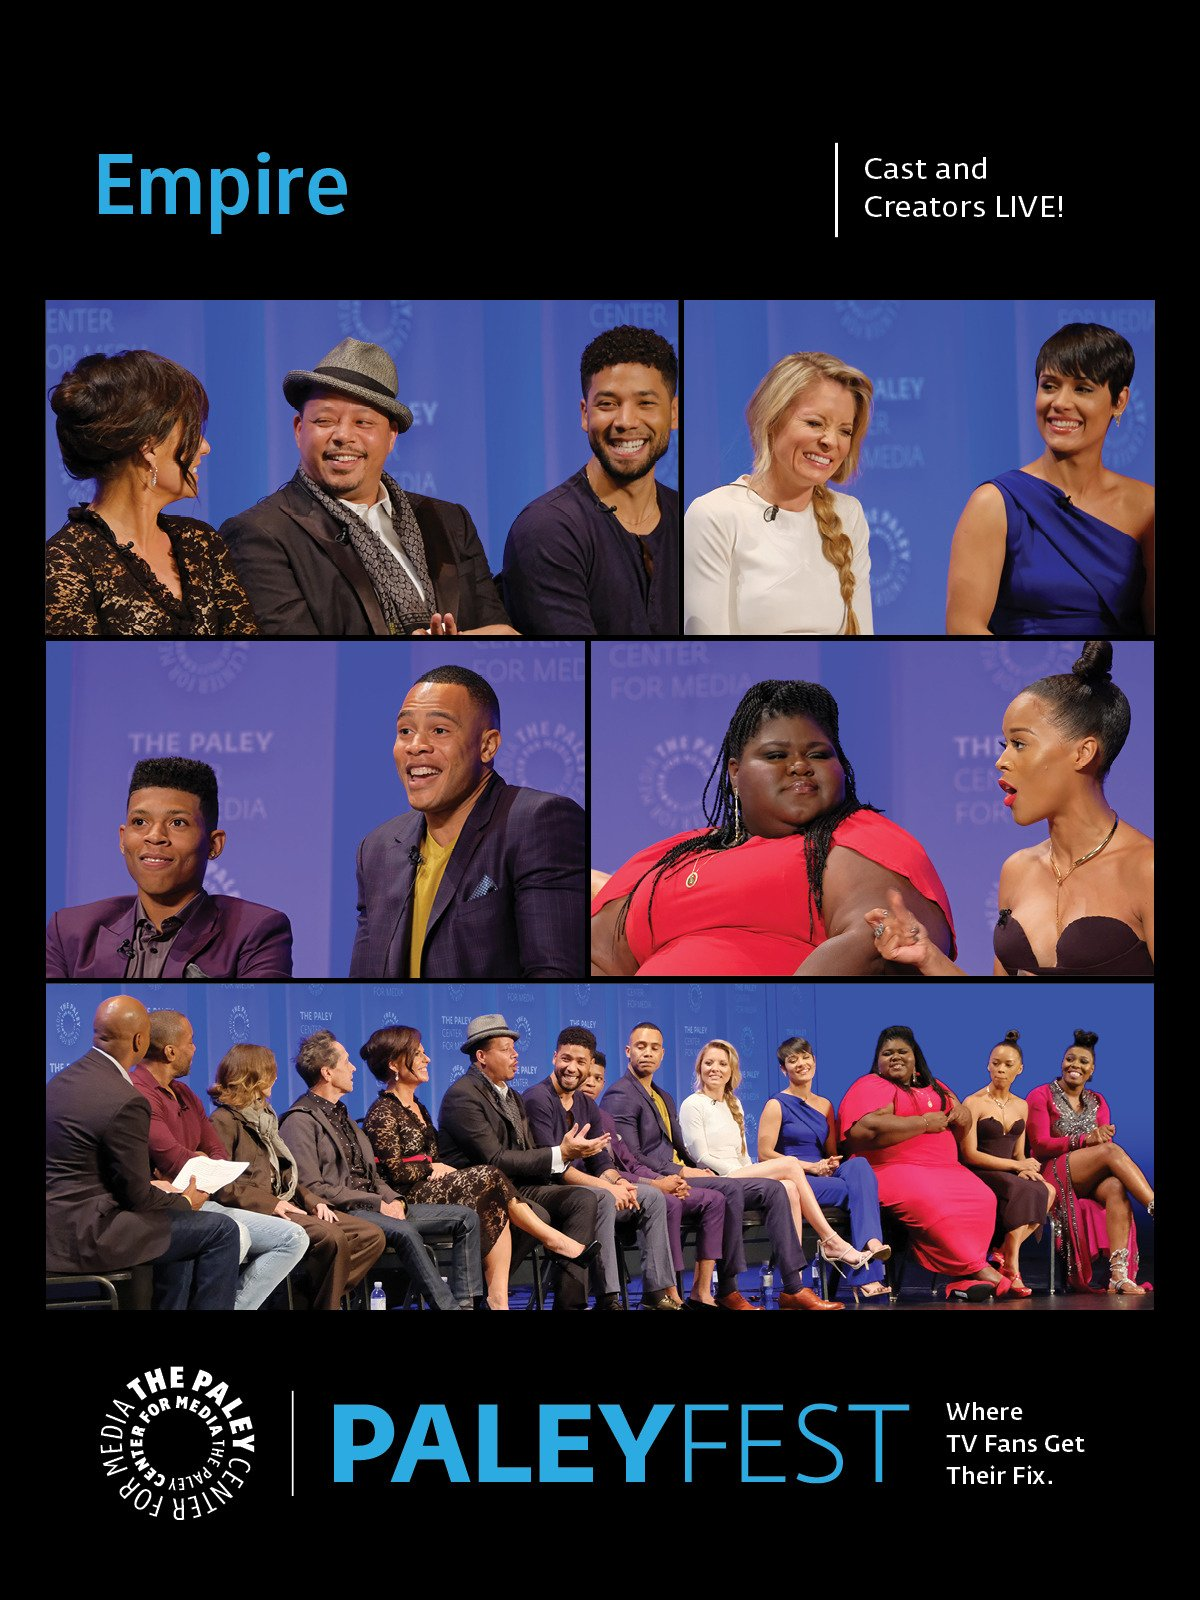 Empire: Cast and Creators PaleyFest